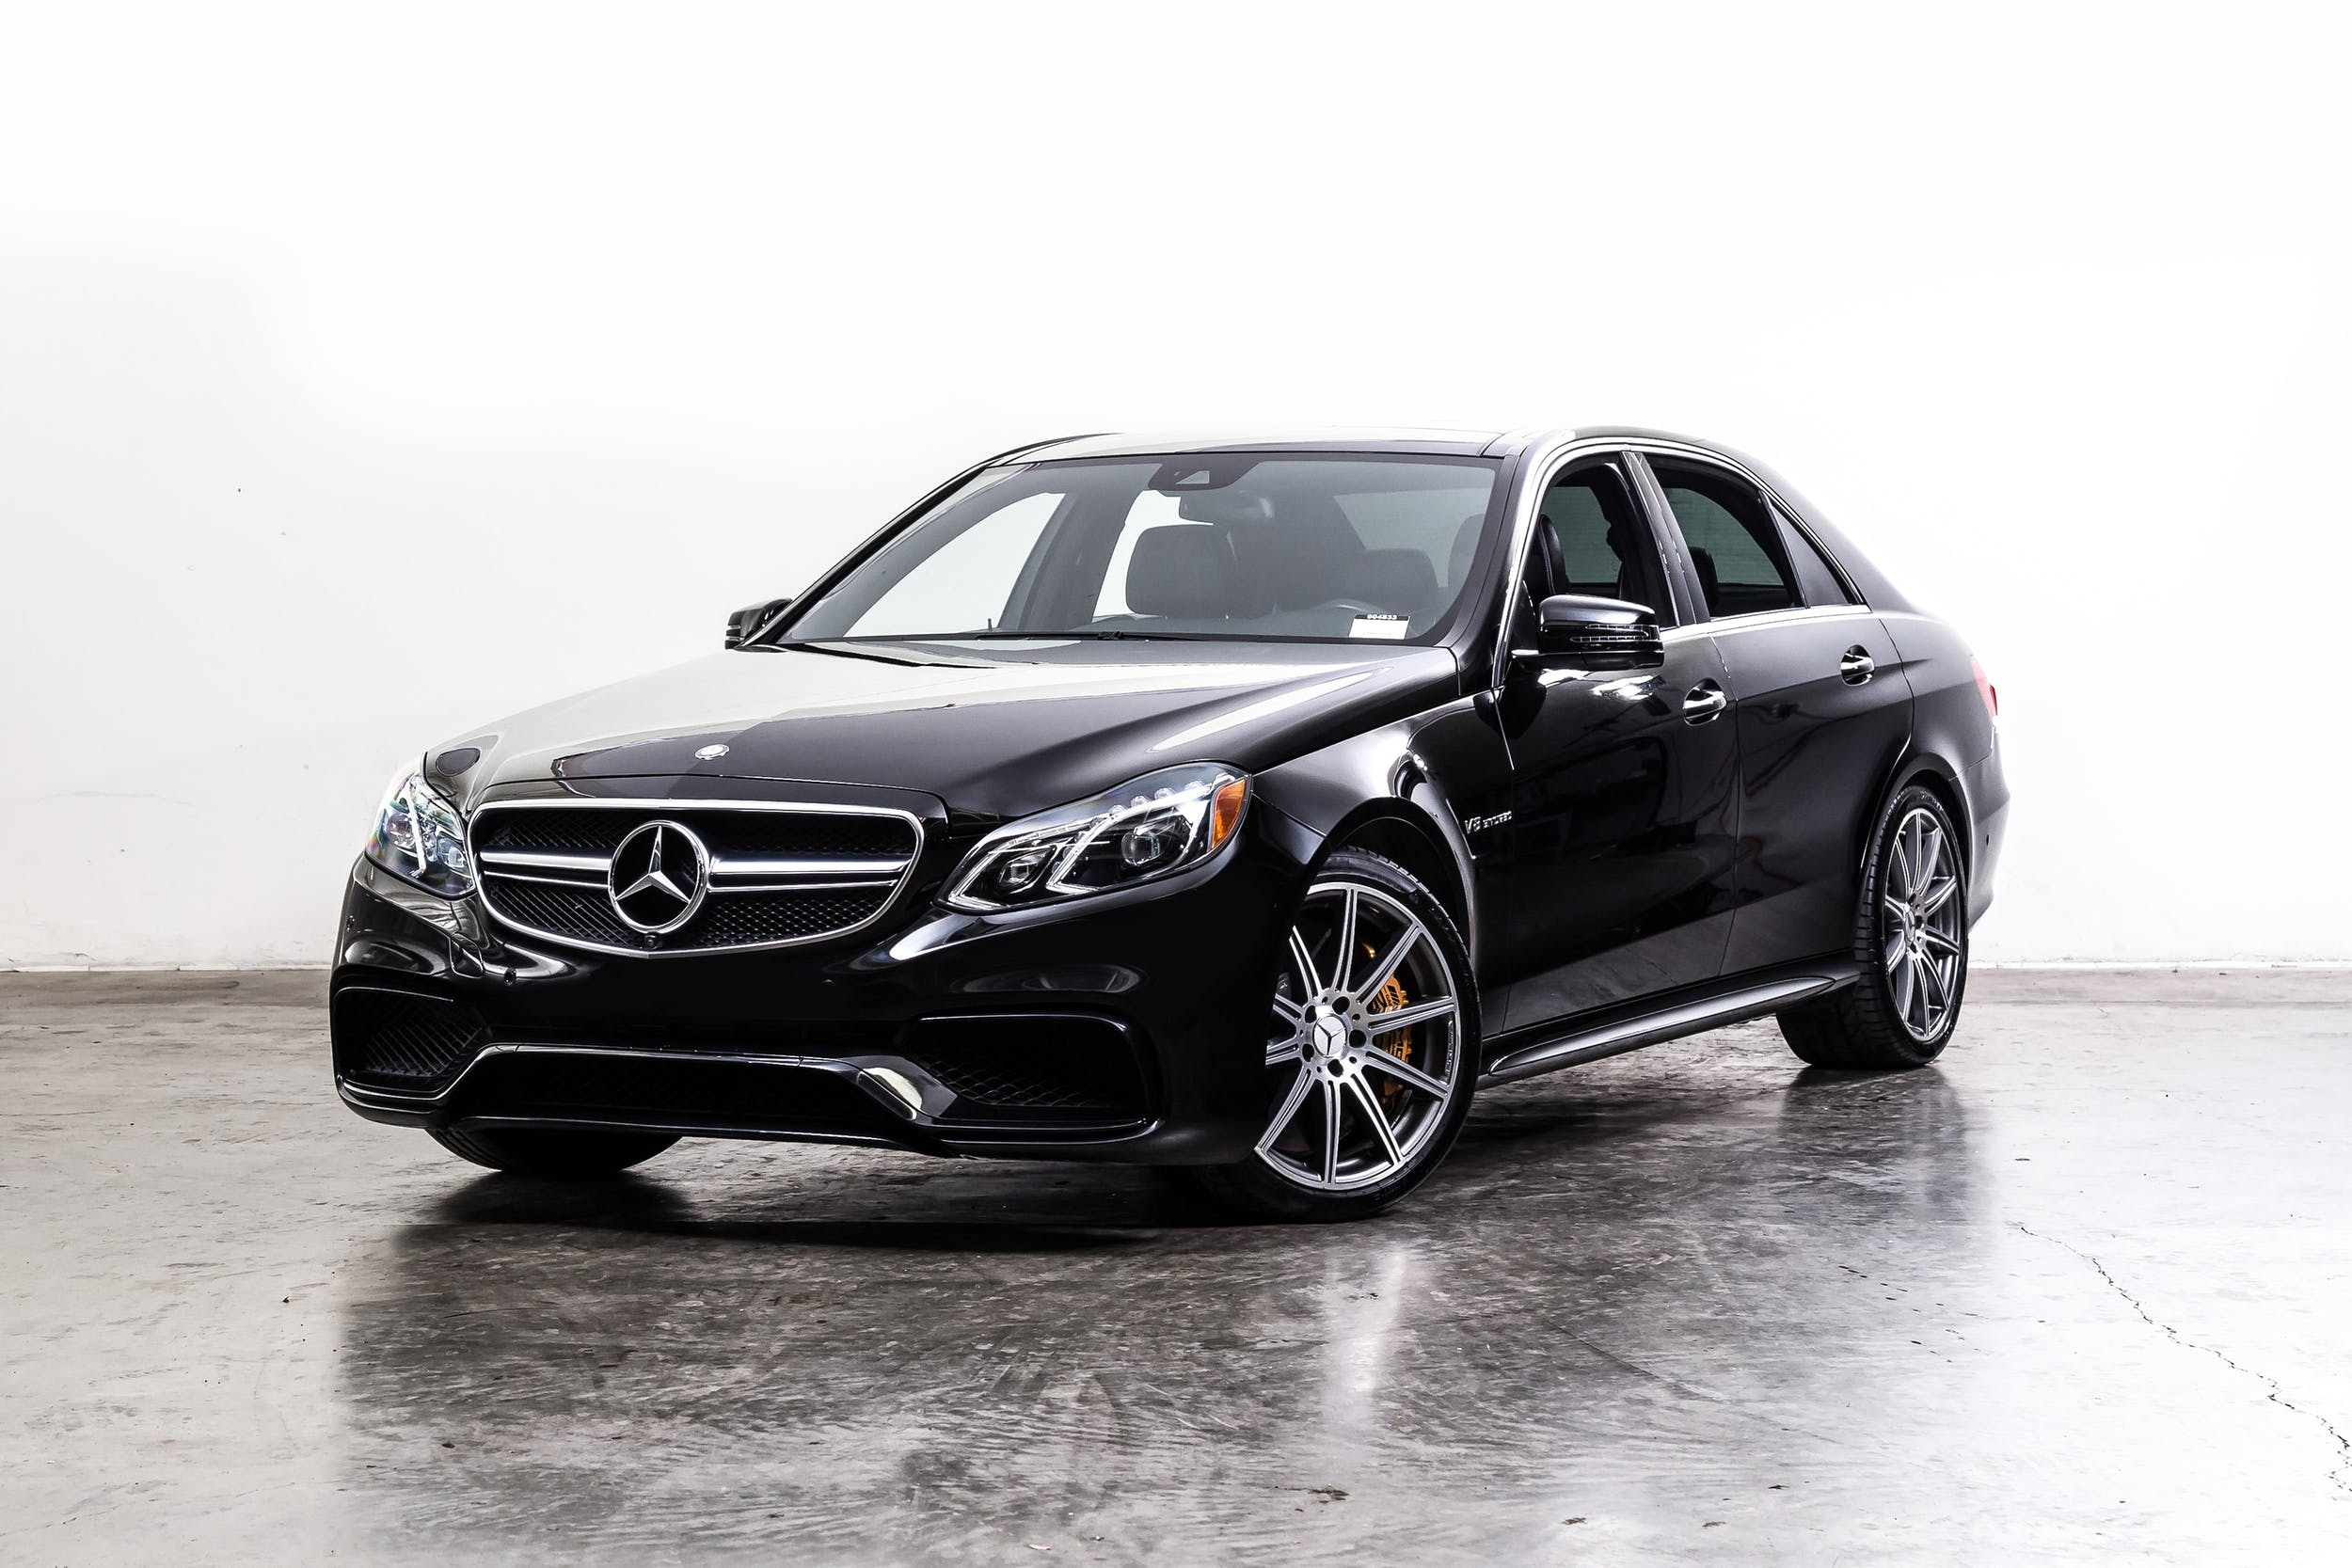 Used Mercedes-Benz for sale in Los Angeles   Shift